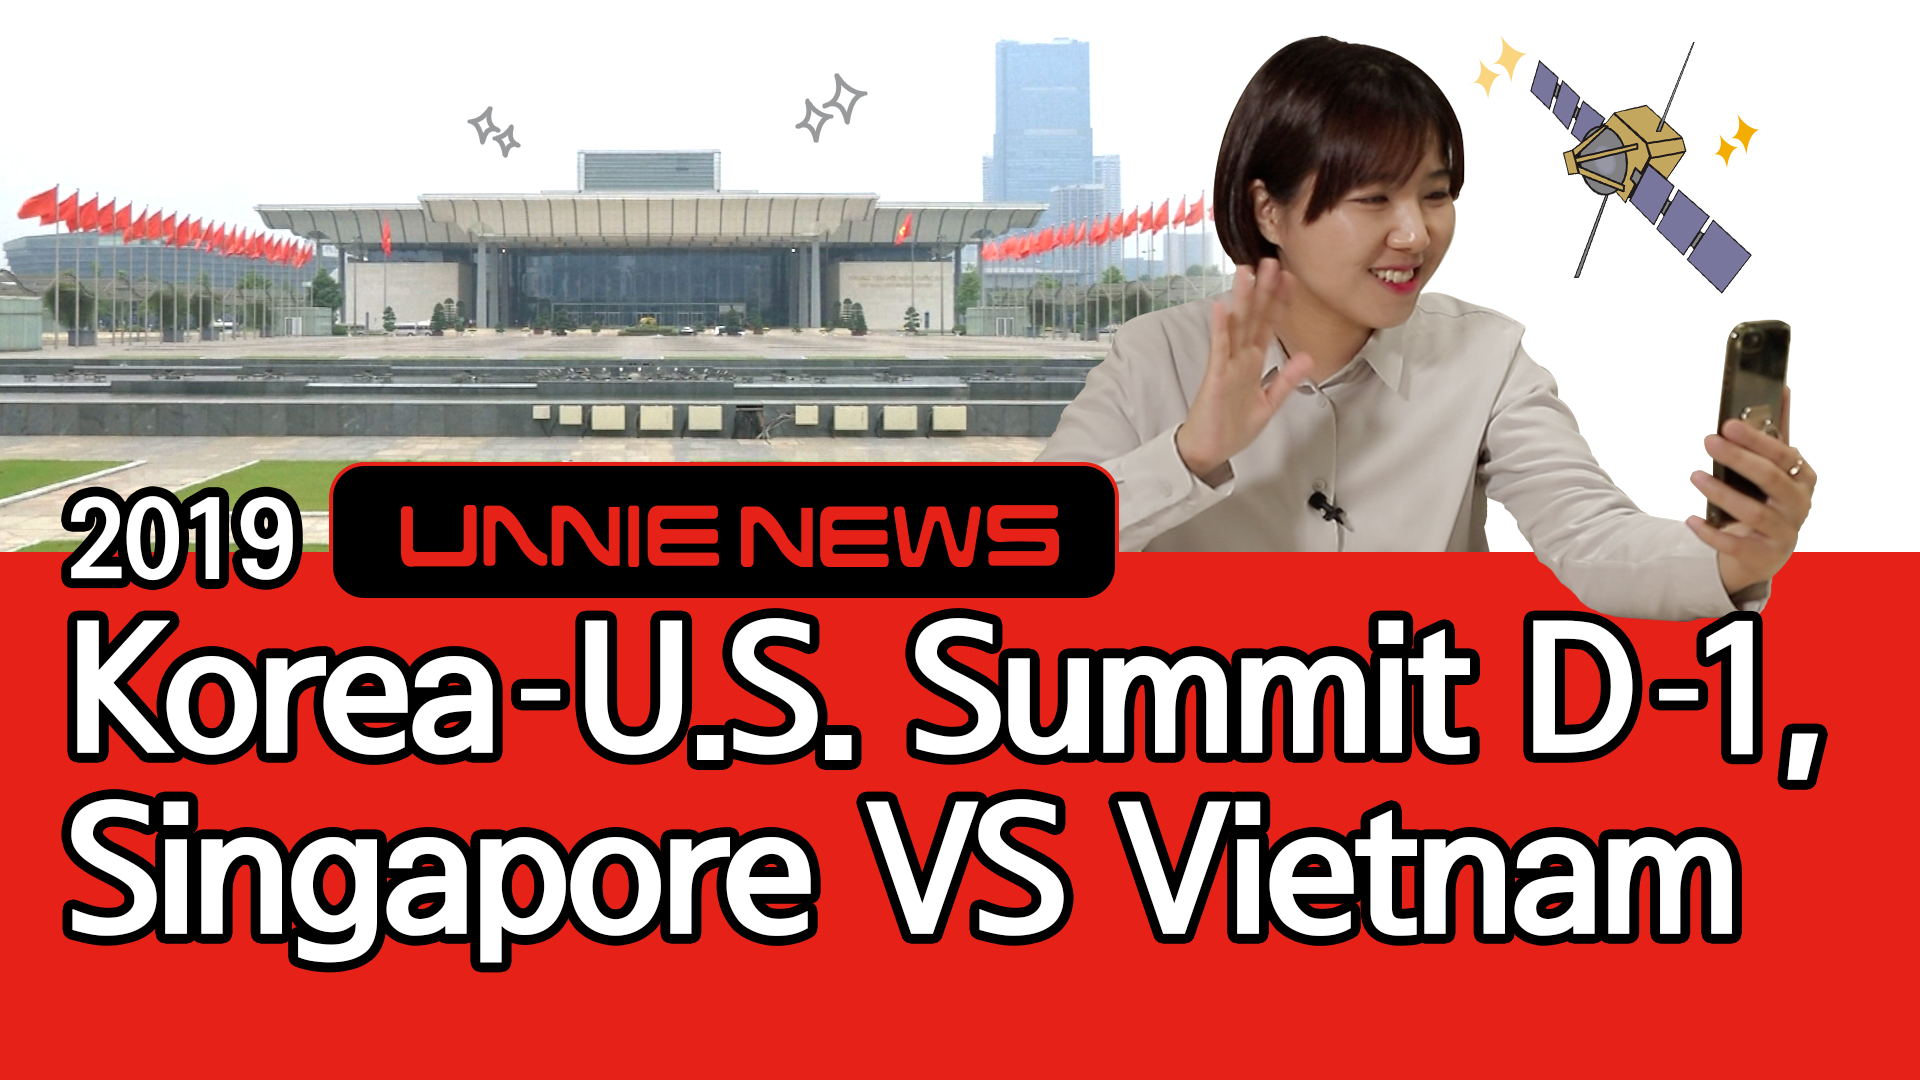 [UNNIE NEWS] 2019 North Korea - U.S. Summit D-1, Singapore VS Vietnam